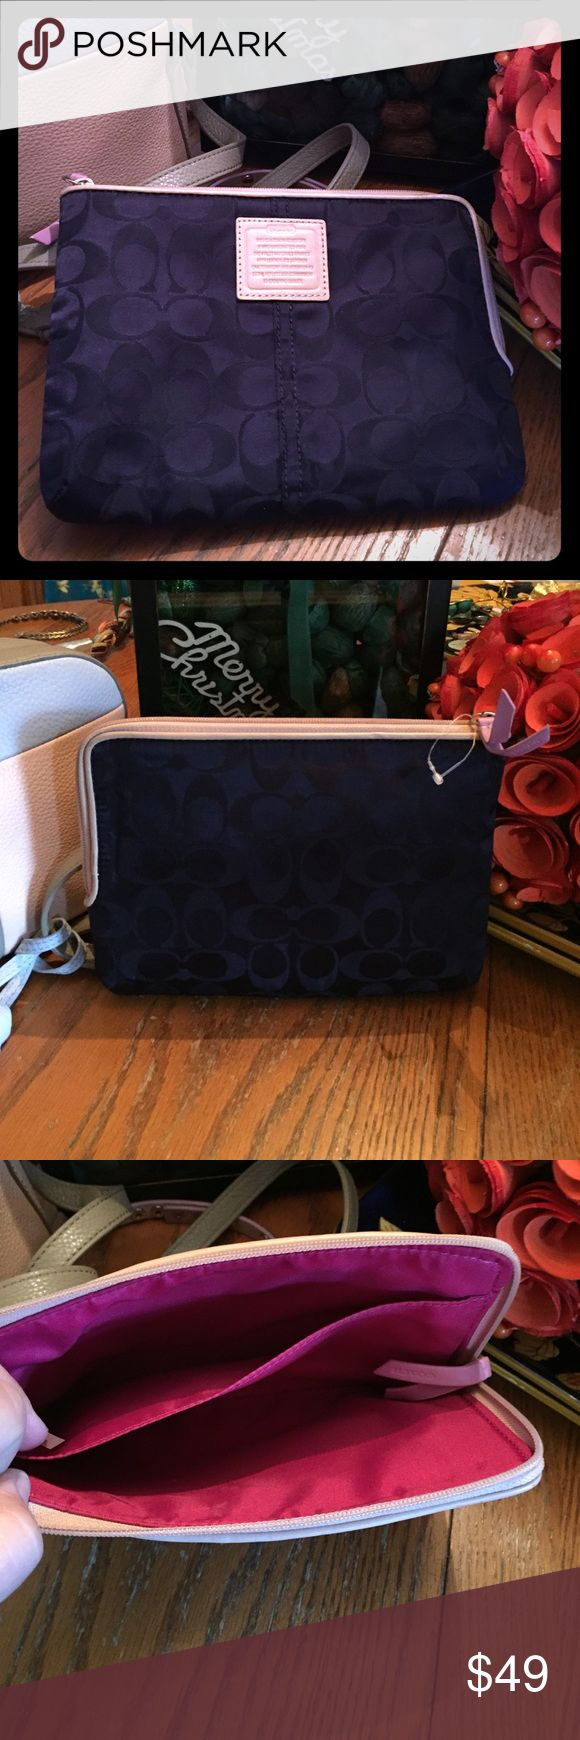 "Coach I pad or wallet navy blue authentic COACH navy blue 8.5"" x 6.5"" is original iPad case or wallet brand-new still has the price tag thingy attached around the zipper tag and the coach accessory authenticity is on the outside of the bag small sleeve on the inside of the bag the inside is lined with the light satin material from a smoke-free pet free home happy poshing cheers 🎉🍾 Coach Bags Mini Bags"